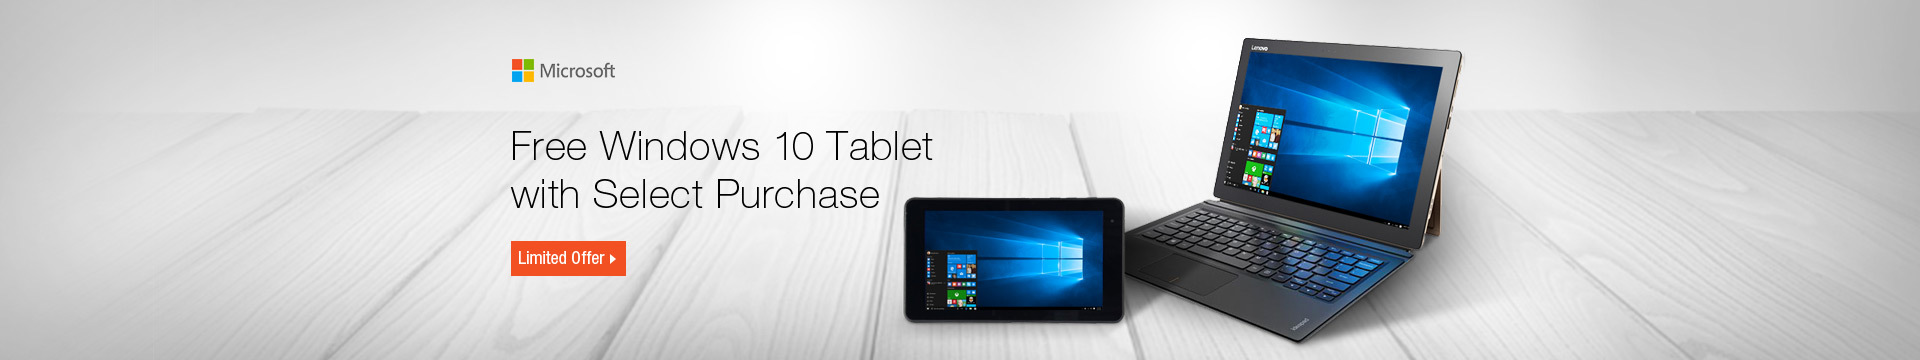 Free Windows 10 Tablet